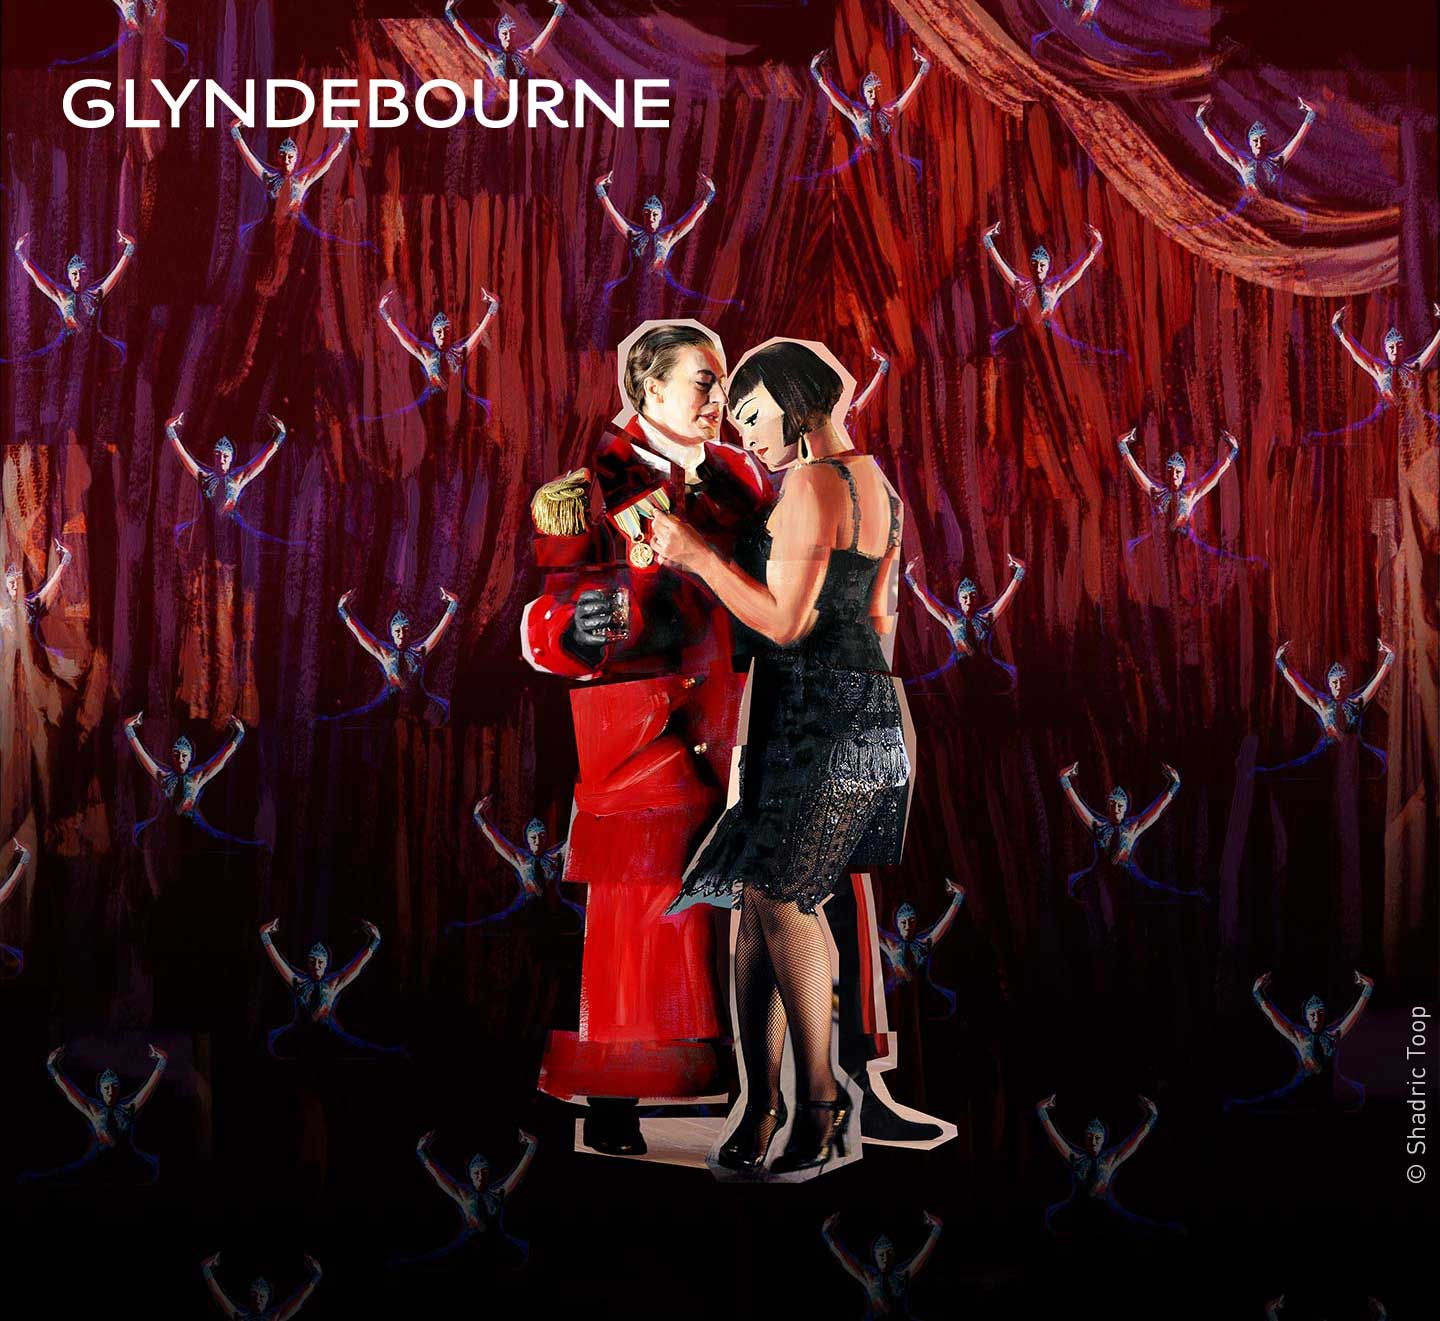 Glyndebourne Festival 2018 featuring characters from the opera Giulio Cesare - painted collage illustration by Shadric Toop